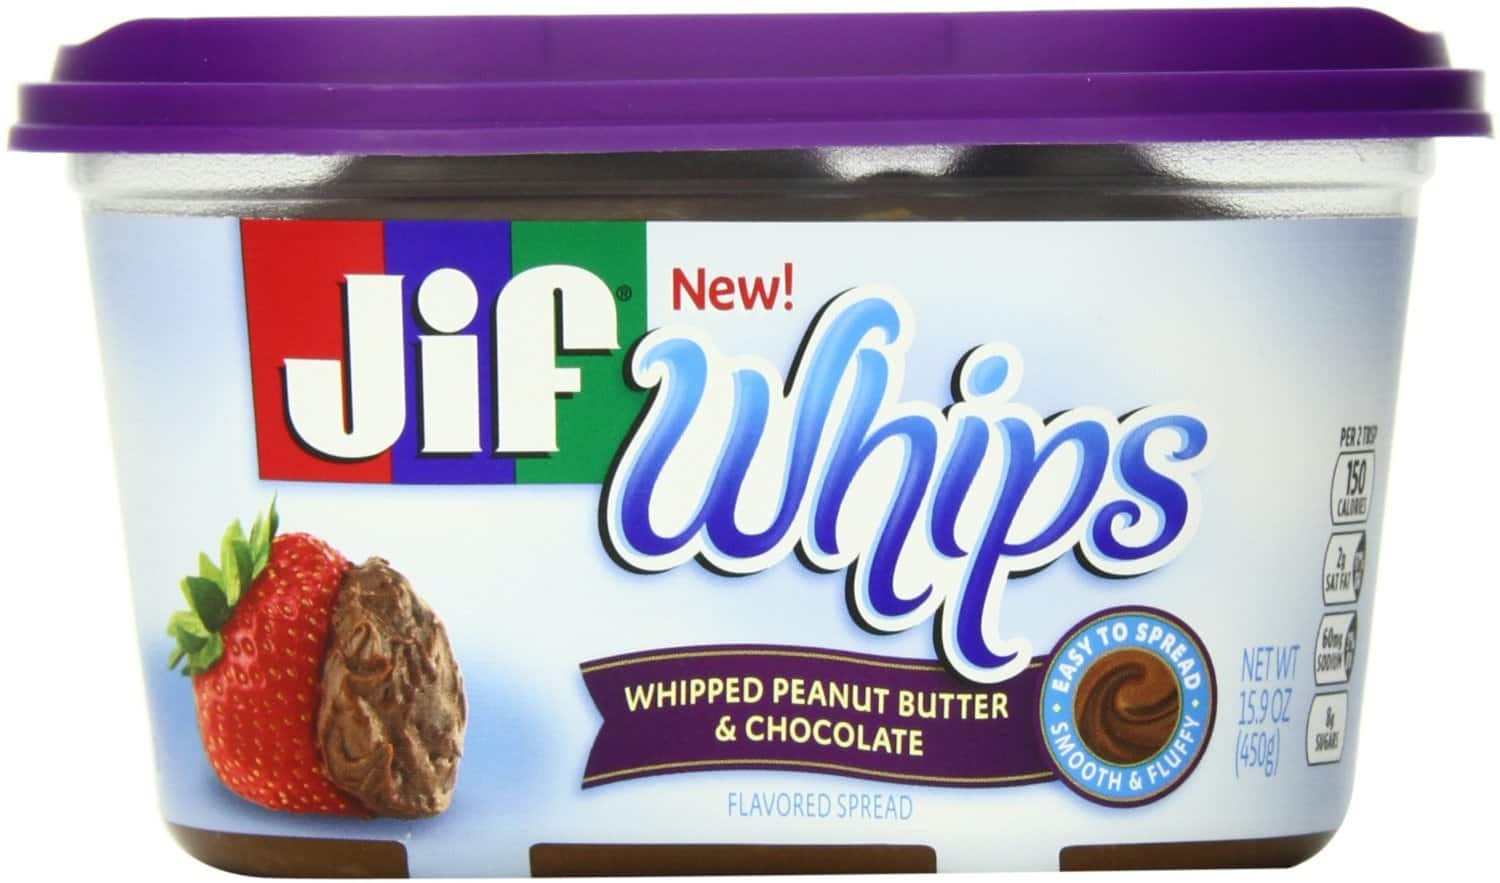 $2.83 Jif Whipped Peanut Butter and Chocolate Flavored Spread, 15.9 Ounce 5% Amazon s&s